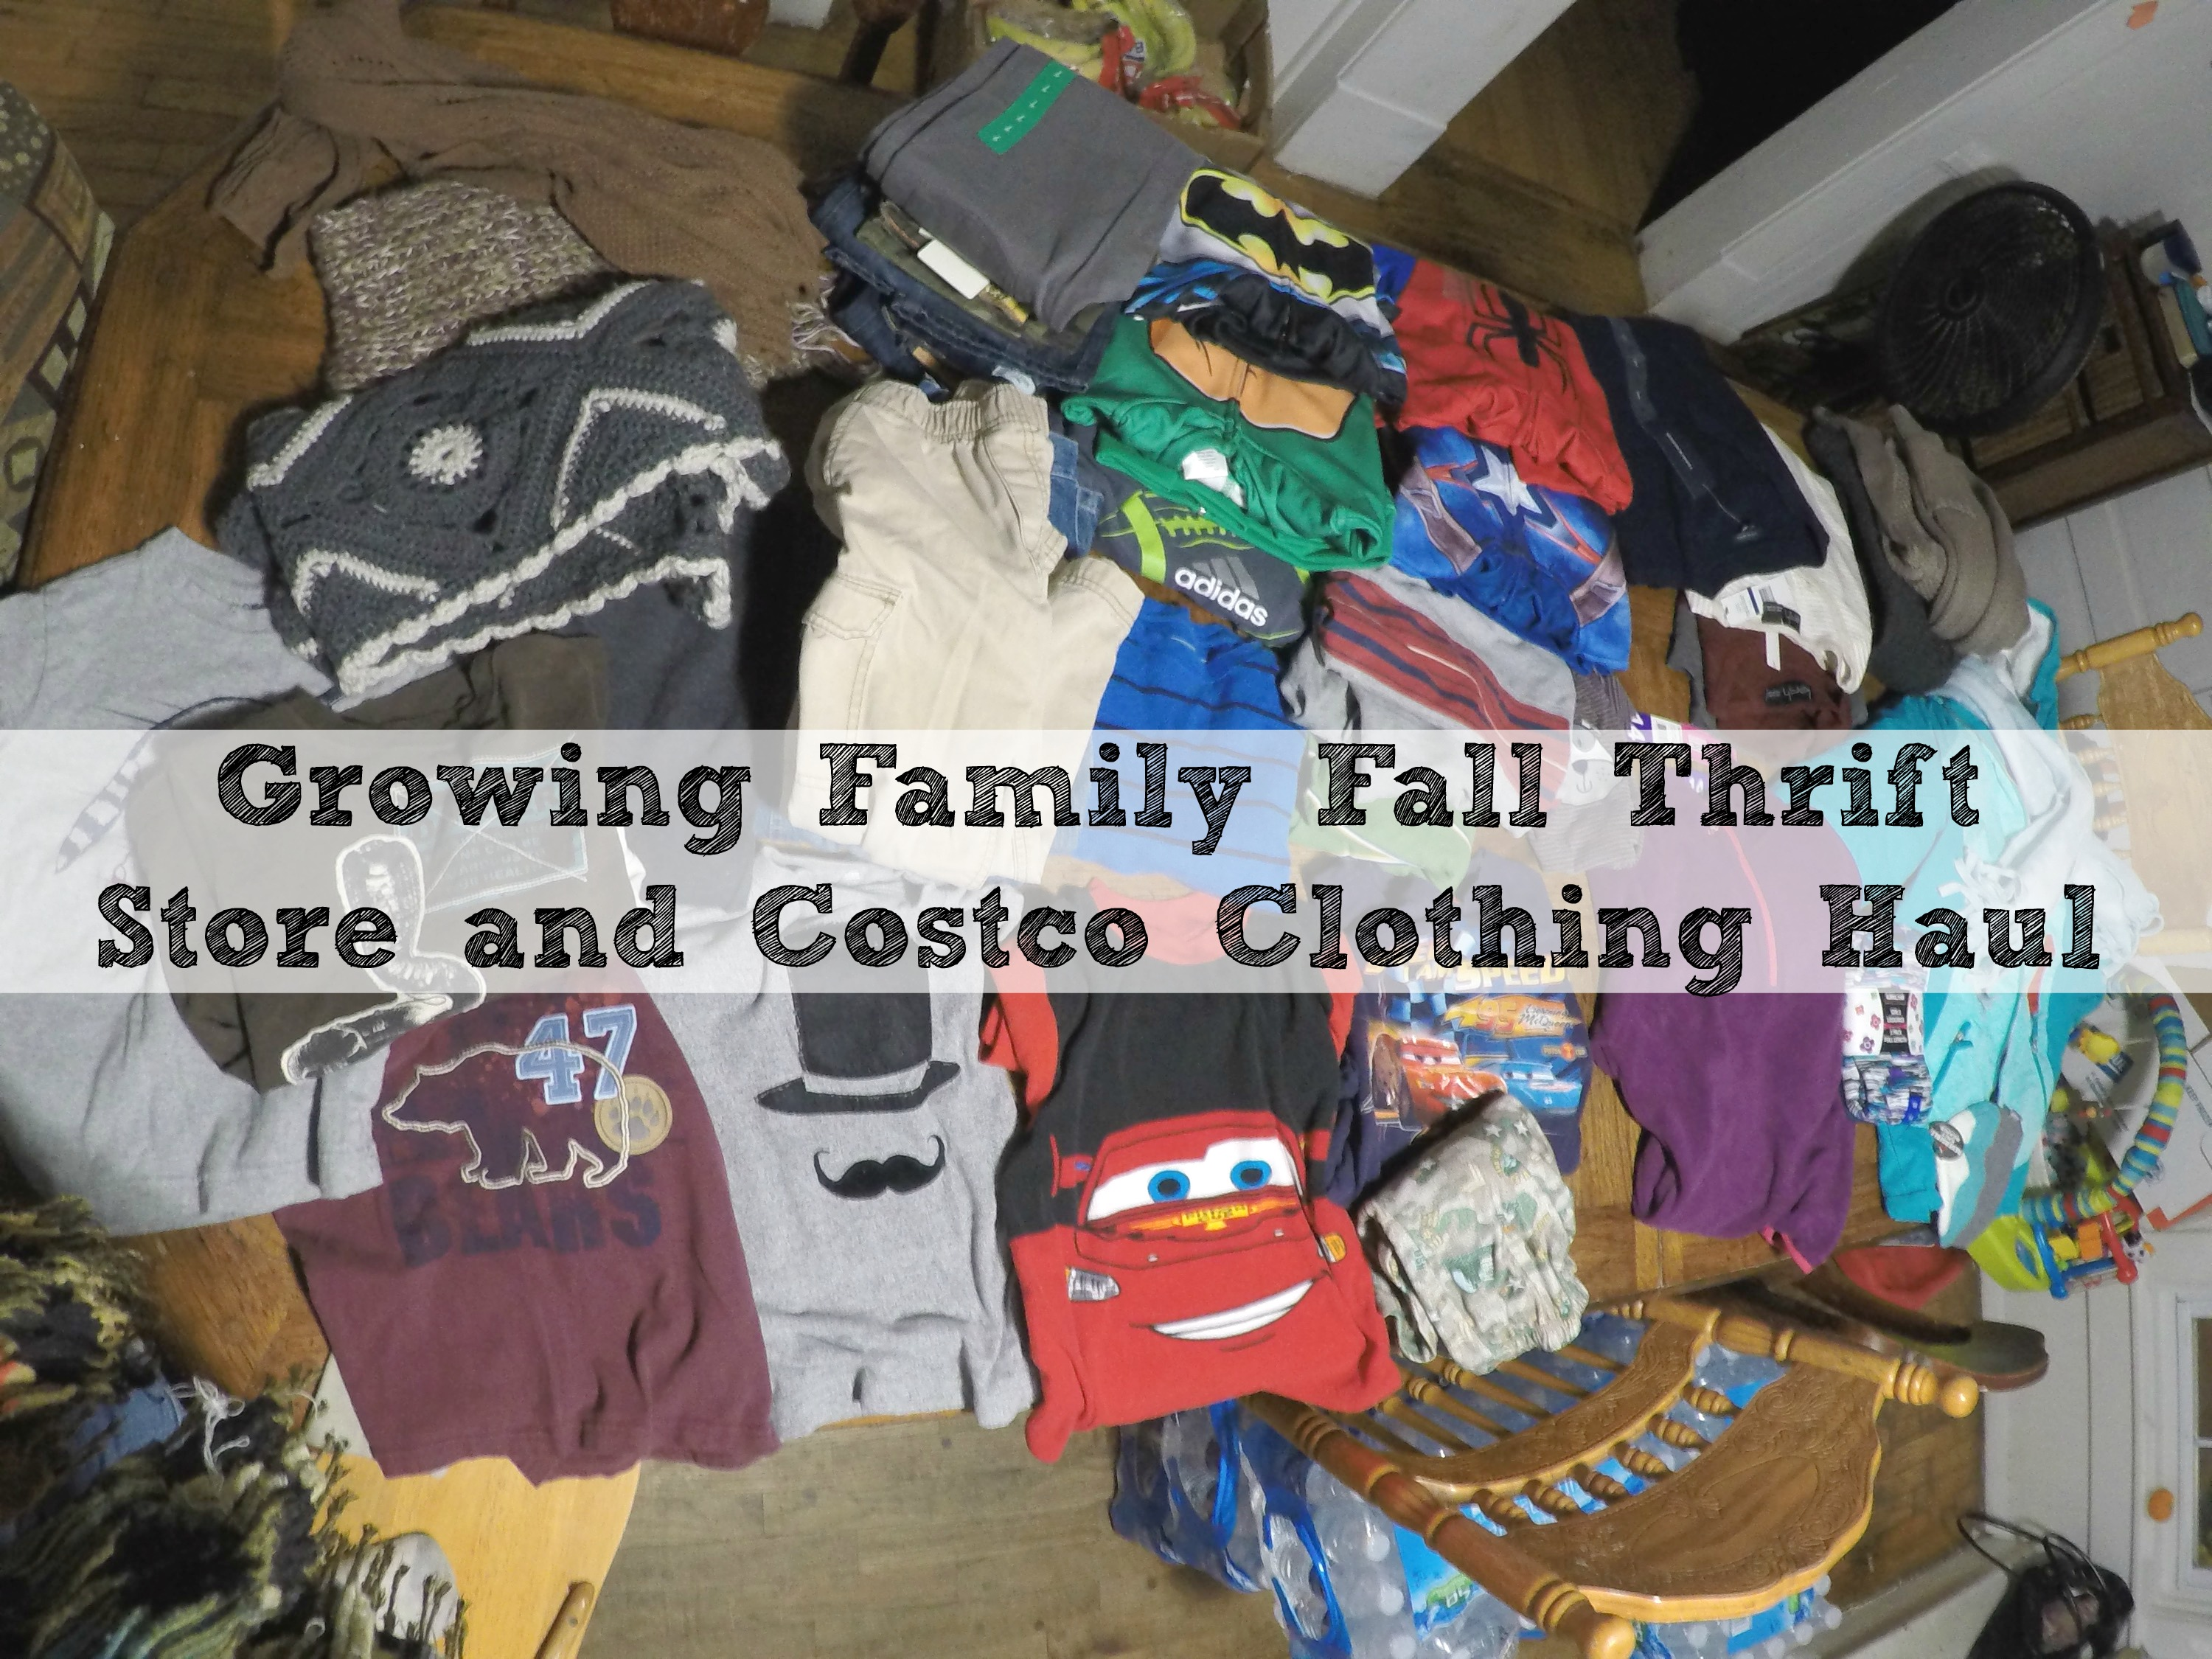 5de5ca15e55 Growing-Family-Fall-Thrift-Store-and-Costco-Clothing-Haul.jpg